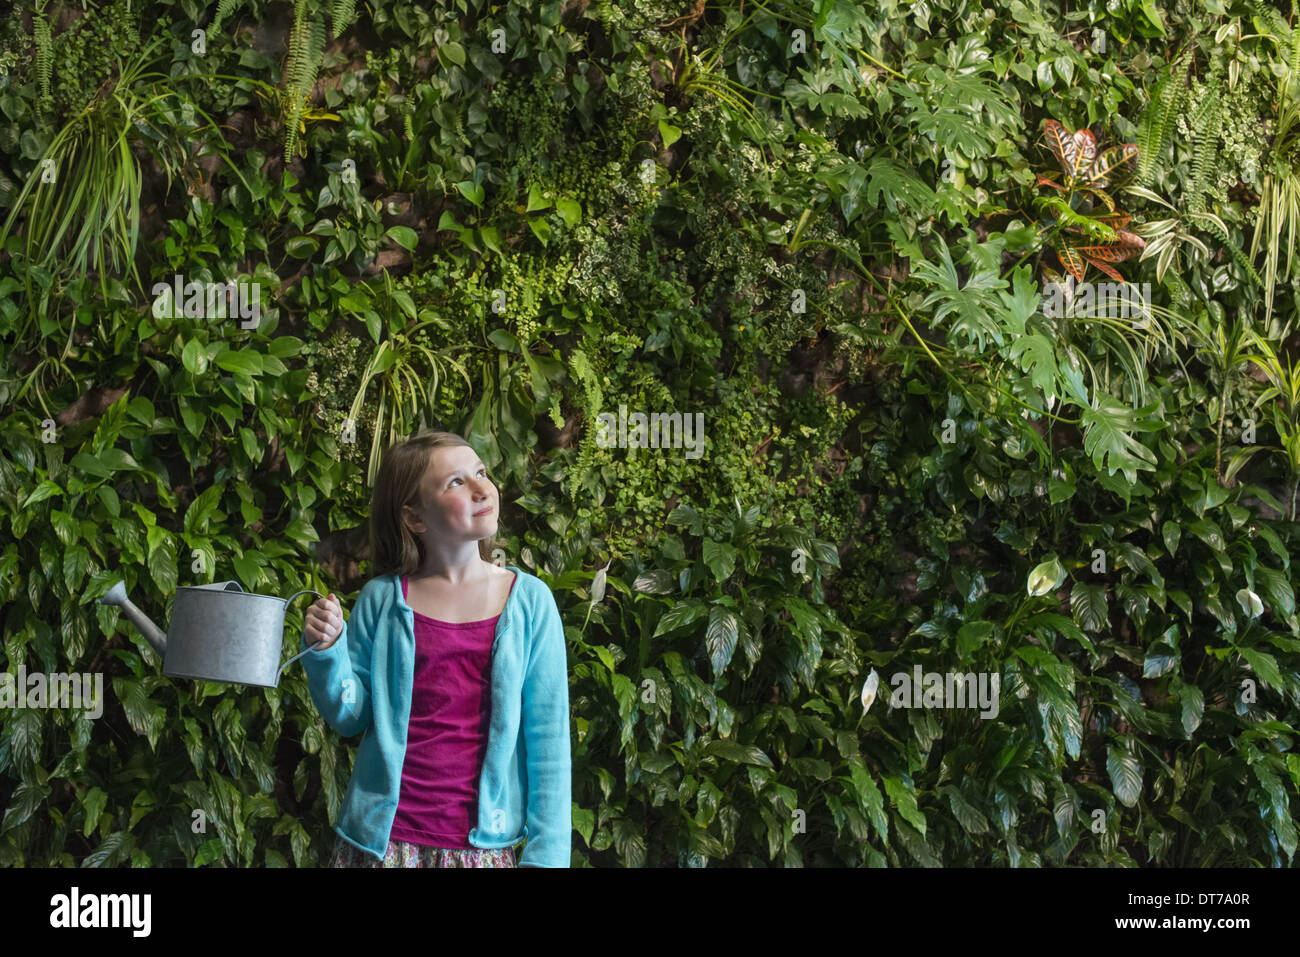 A young girl standing in front of a wall covered with ferns and climbing plants. - Stock Image